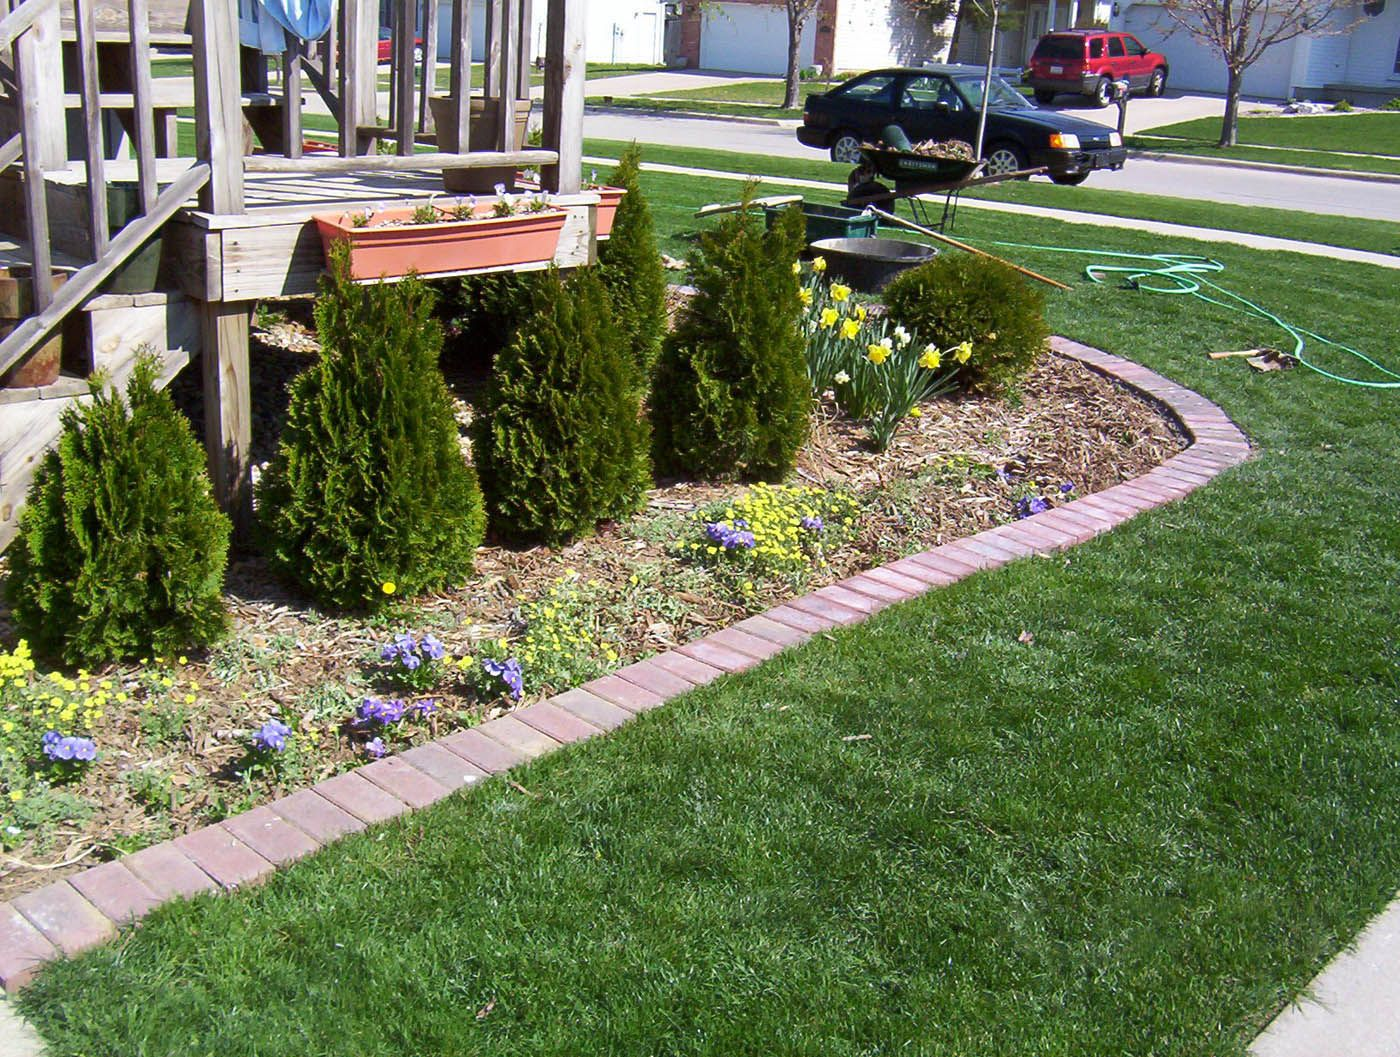 Simple flower bed edging design ideas lawn care for Easy to care for landscaping ideas